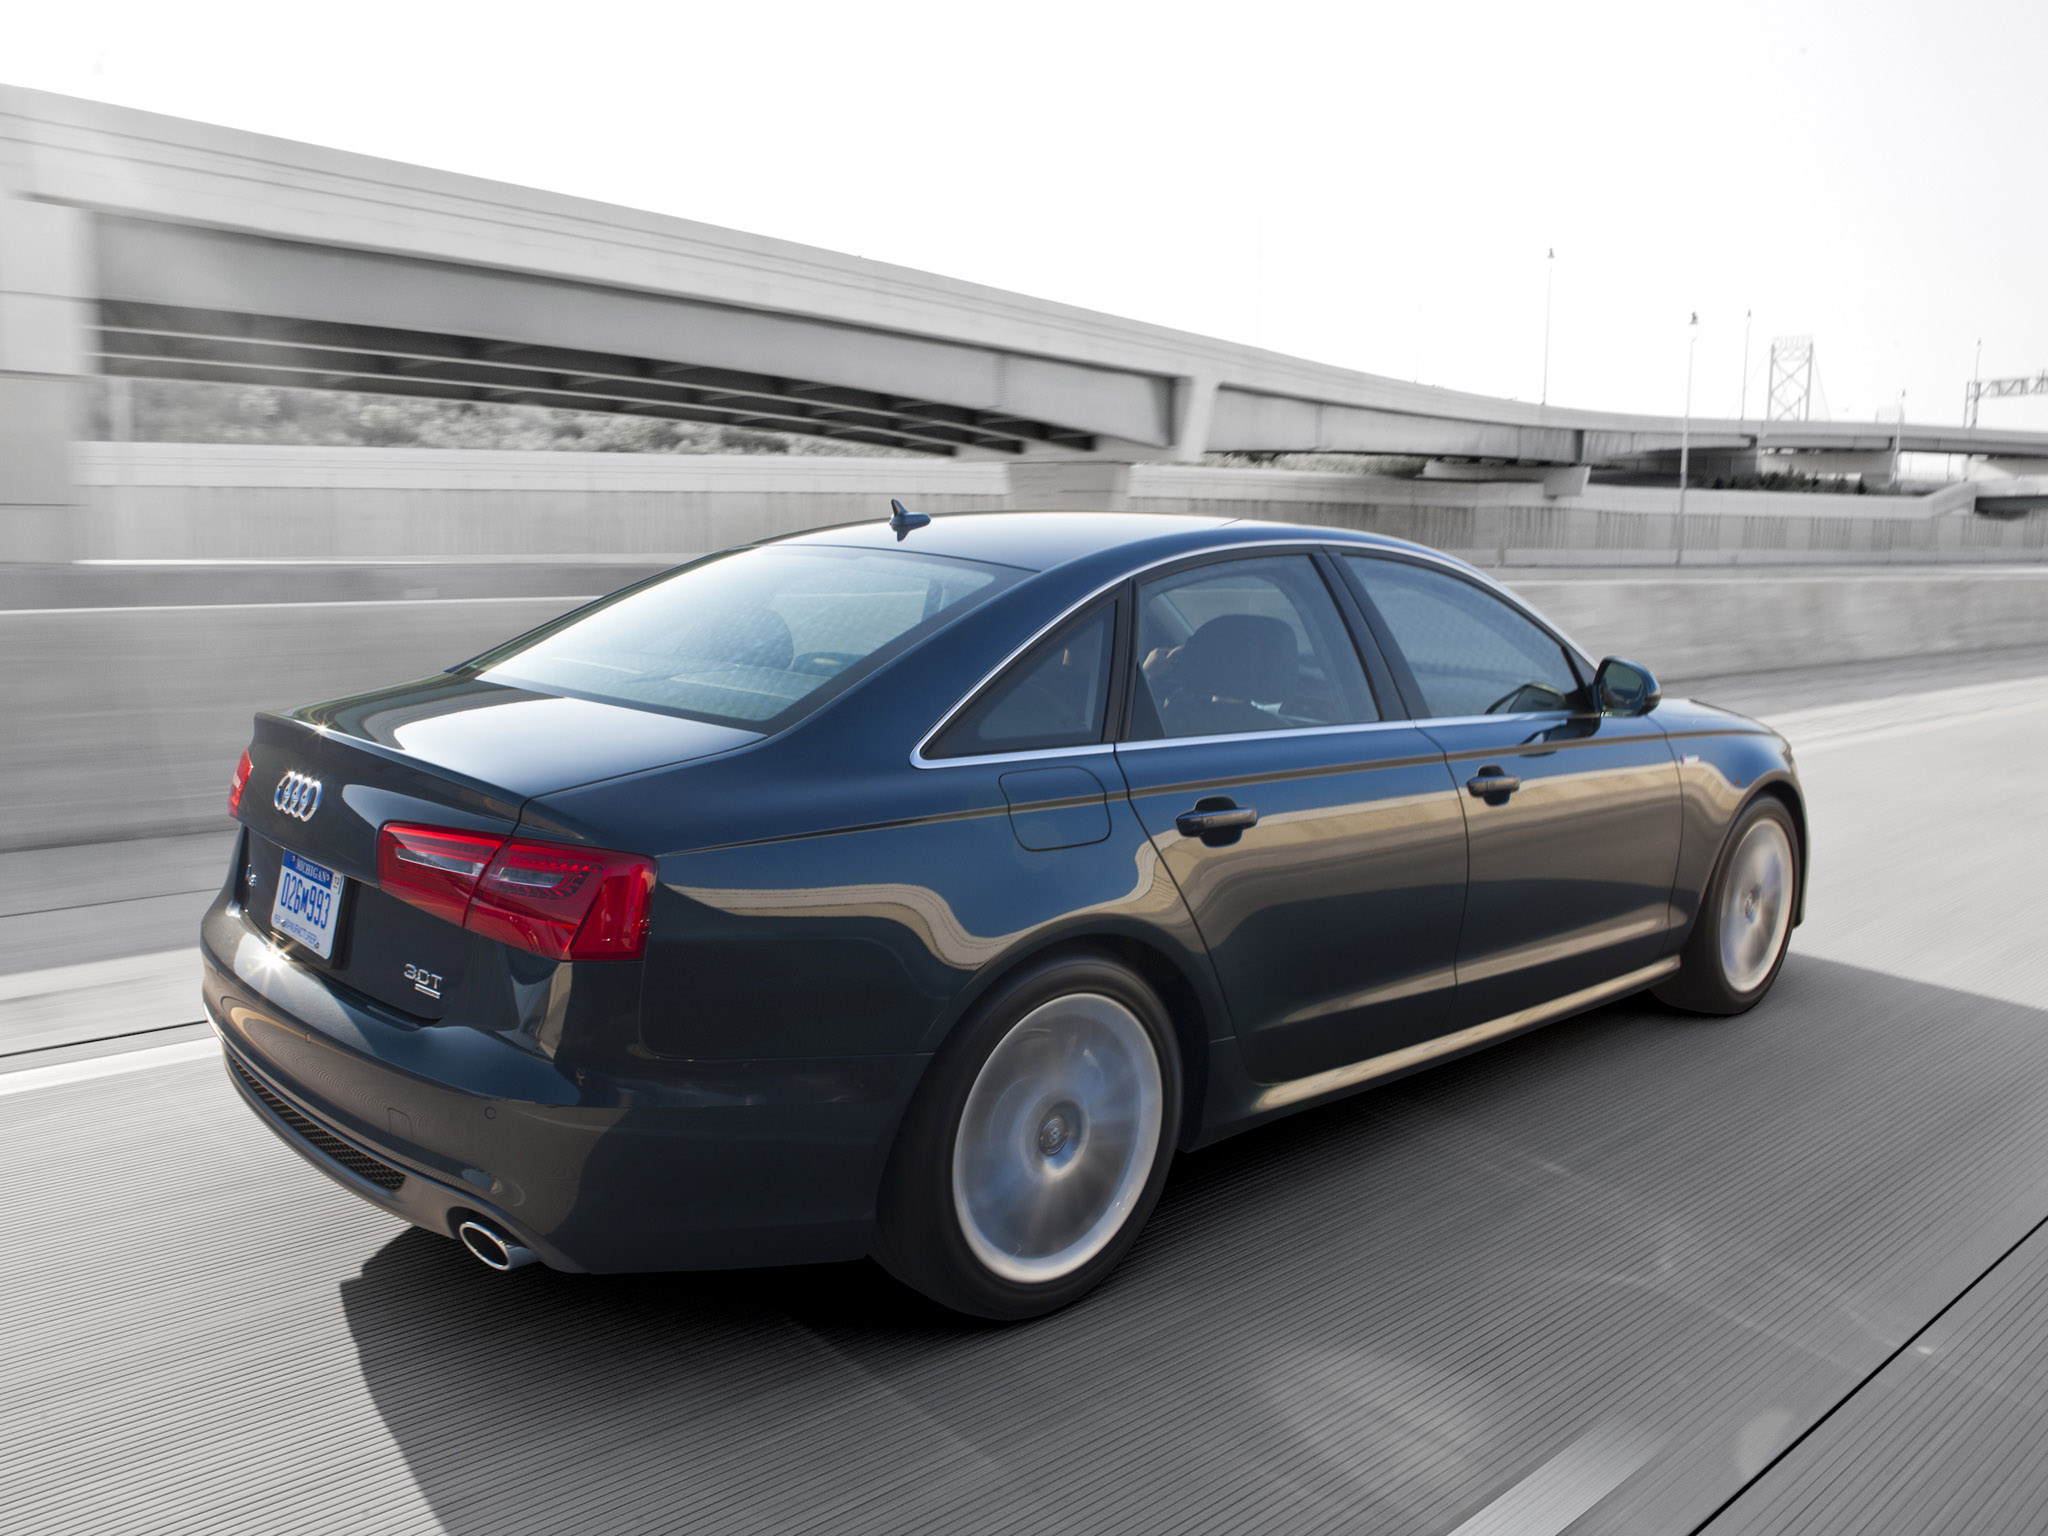 audi a6 3 0t s line sedan usa 2011 audi a6 3 0t s line sedan usa 2011 photo 03 car in pictures. Black Bedroom Furniture Sets. Home Design Ideas